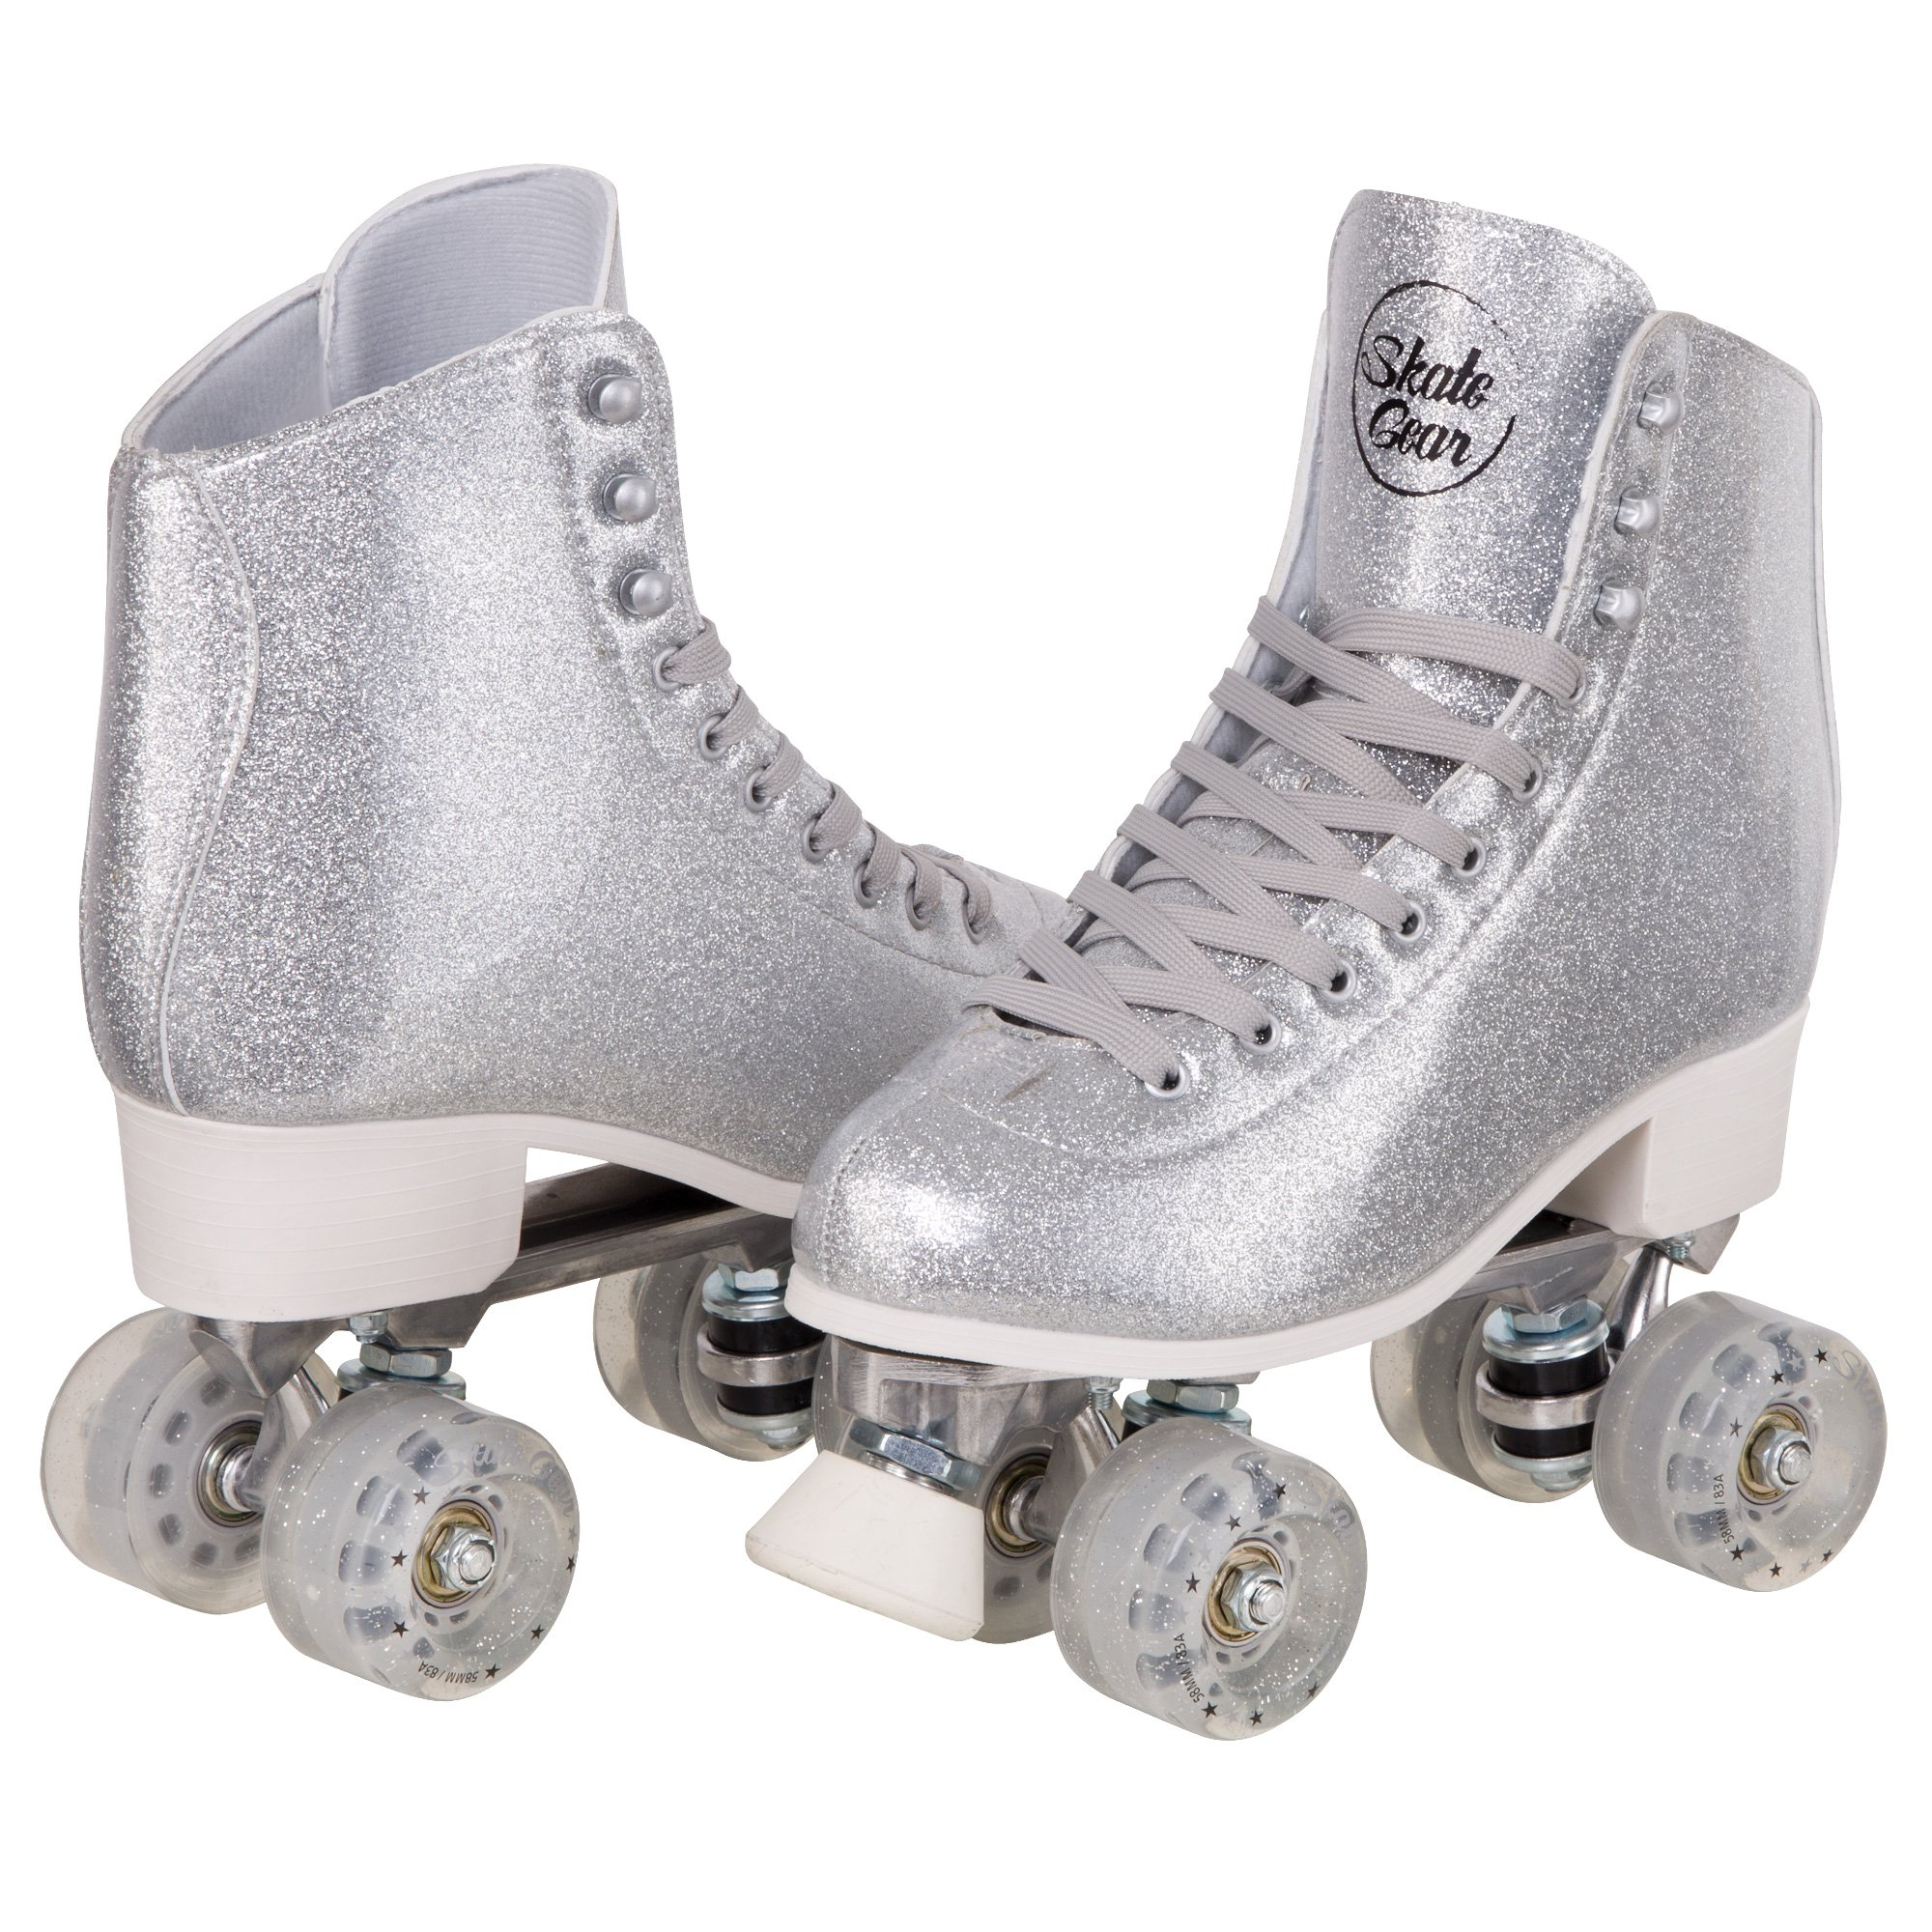 Cal 7 Sparkly Roller Skates for Indoor & Outdoor Skating, Faux Leather Quad Skate with Ankle Support & 83A PU Wheels for Kids & Adults (Silver, Men's 9/ Women's 10)